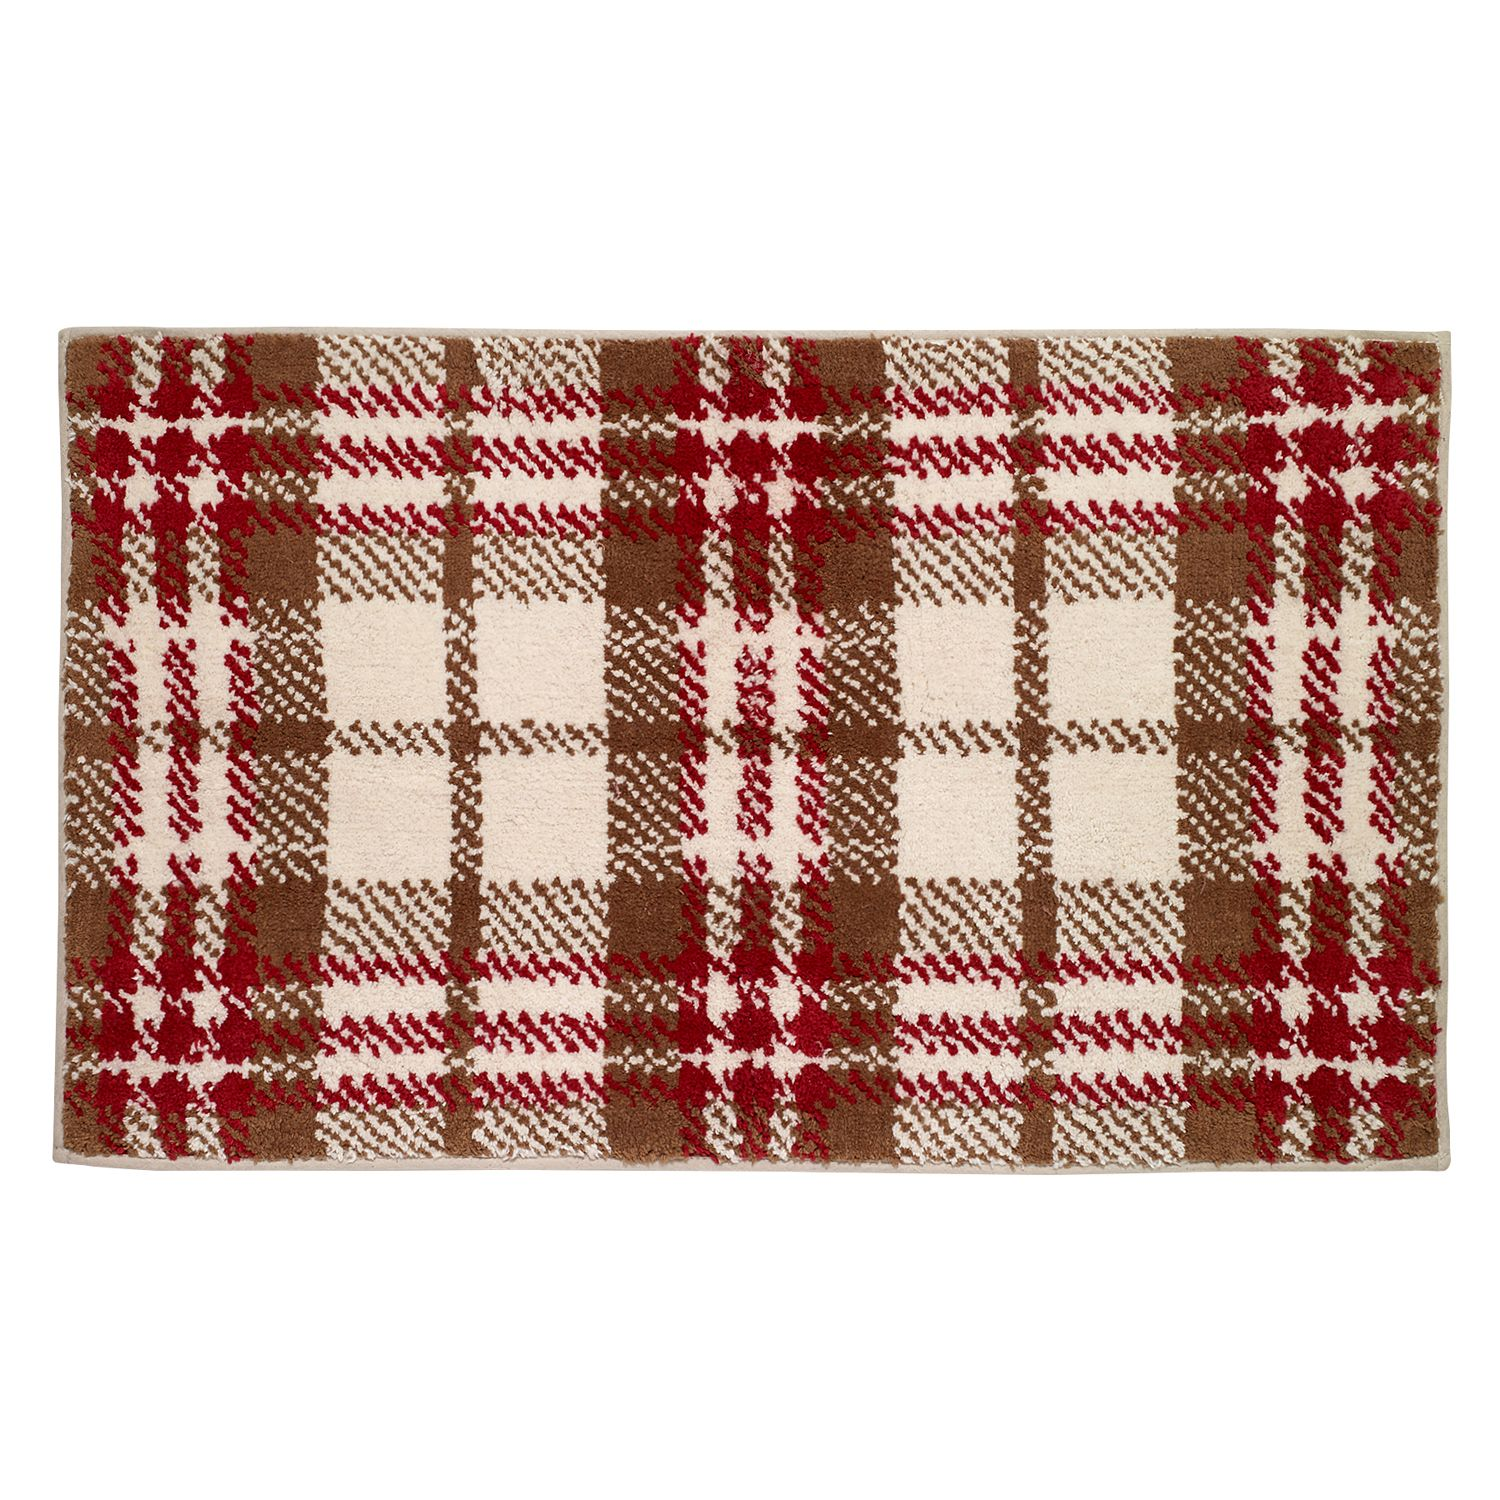 Avanti Hunter Plaid Rug. Avanti Hunter Plaid Shower Curtain Collection